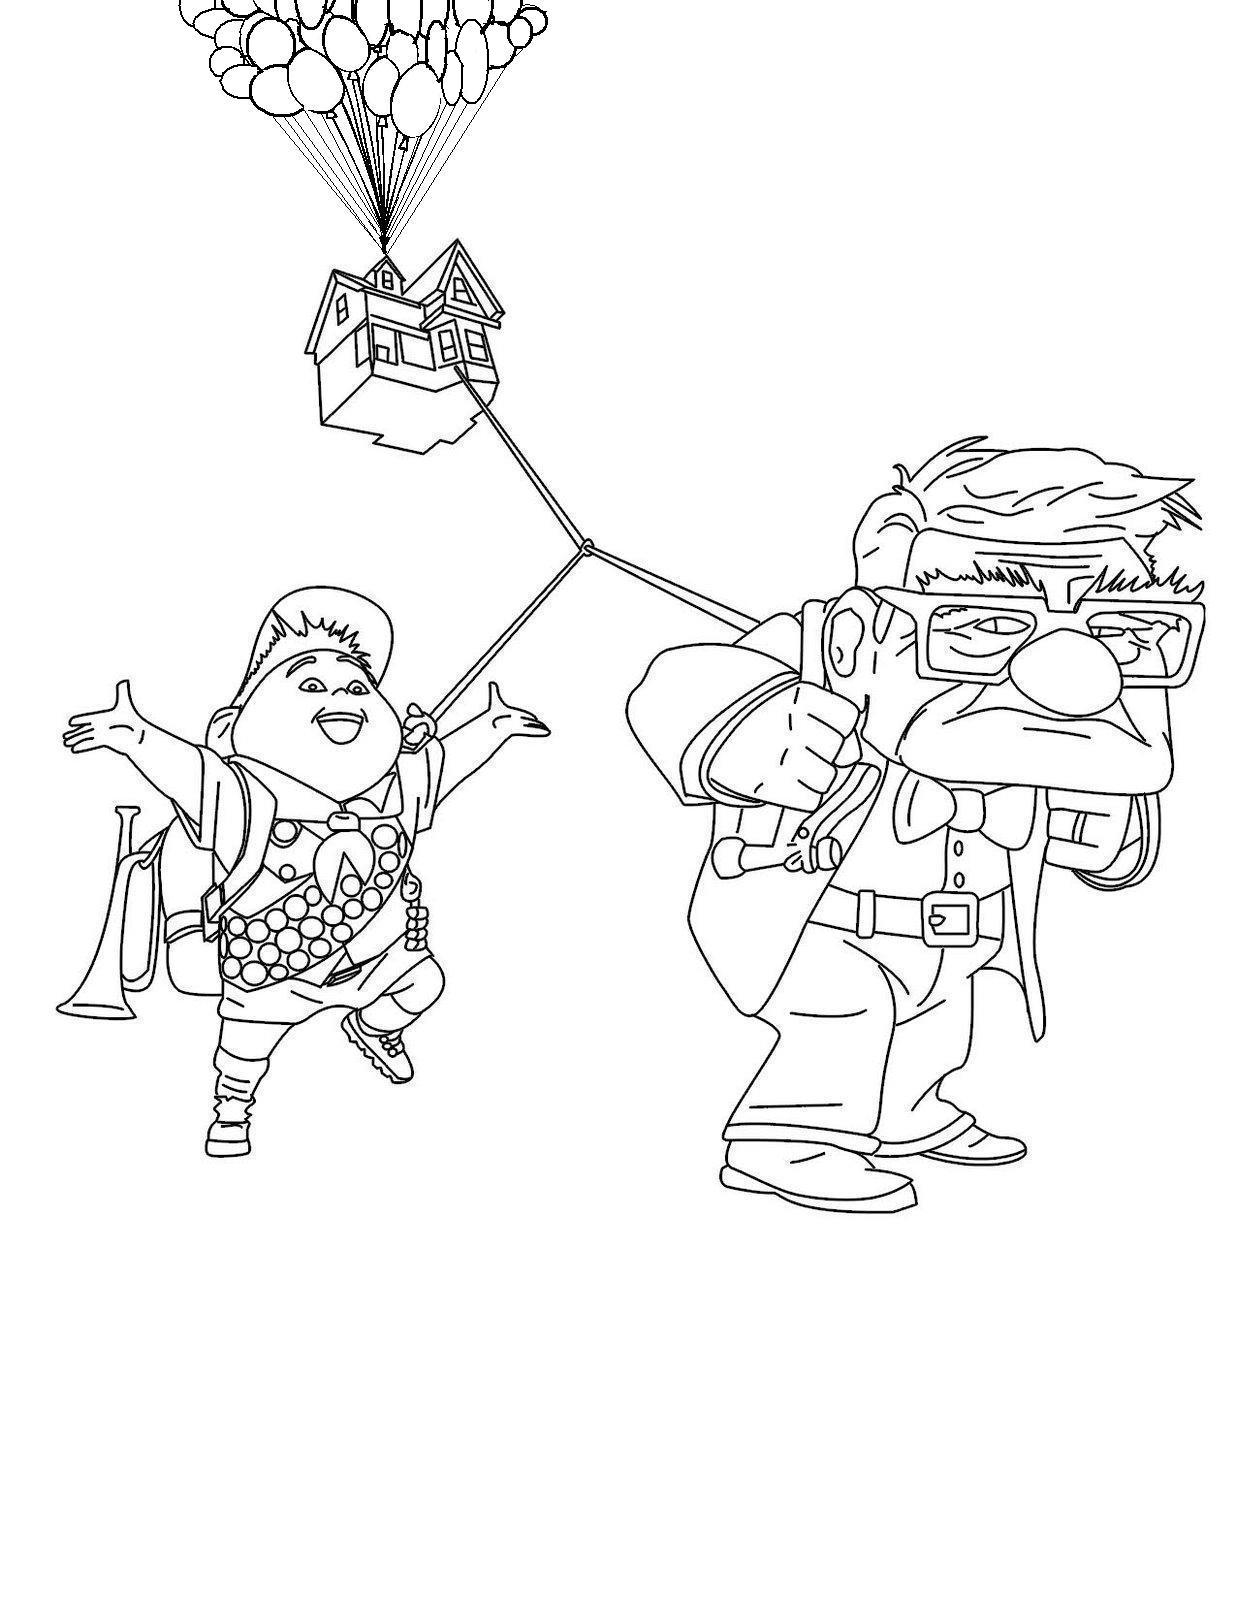 1236x1600 Up House Coloring Page